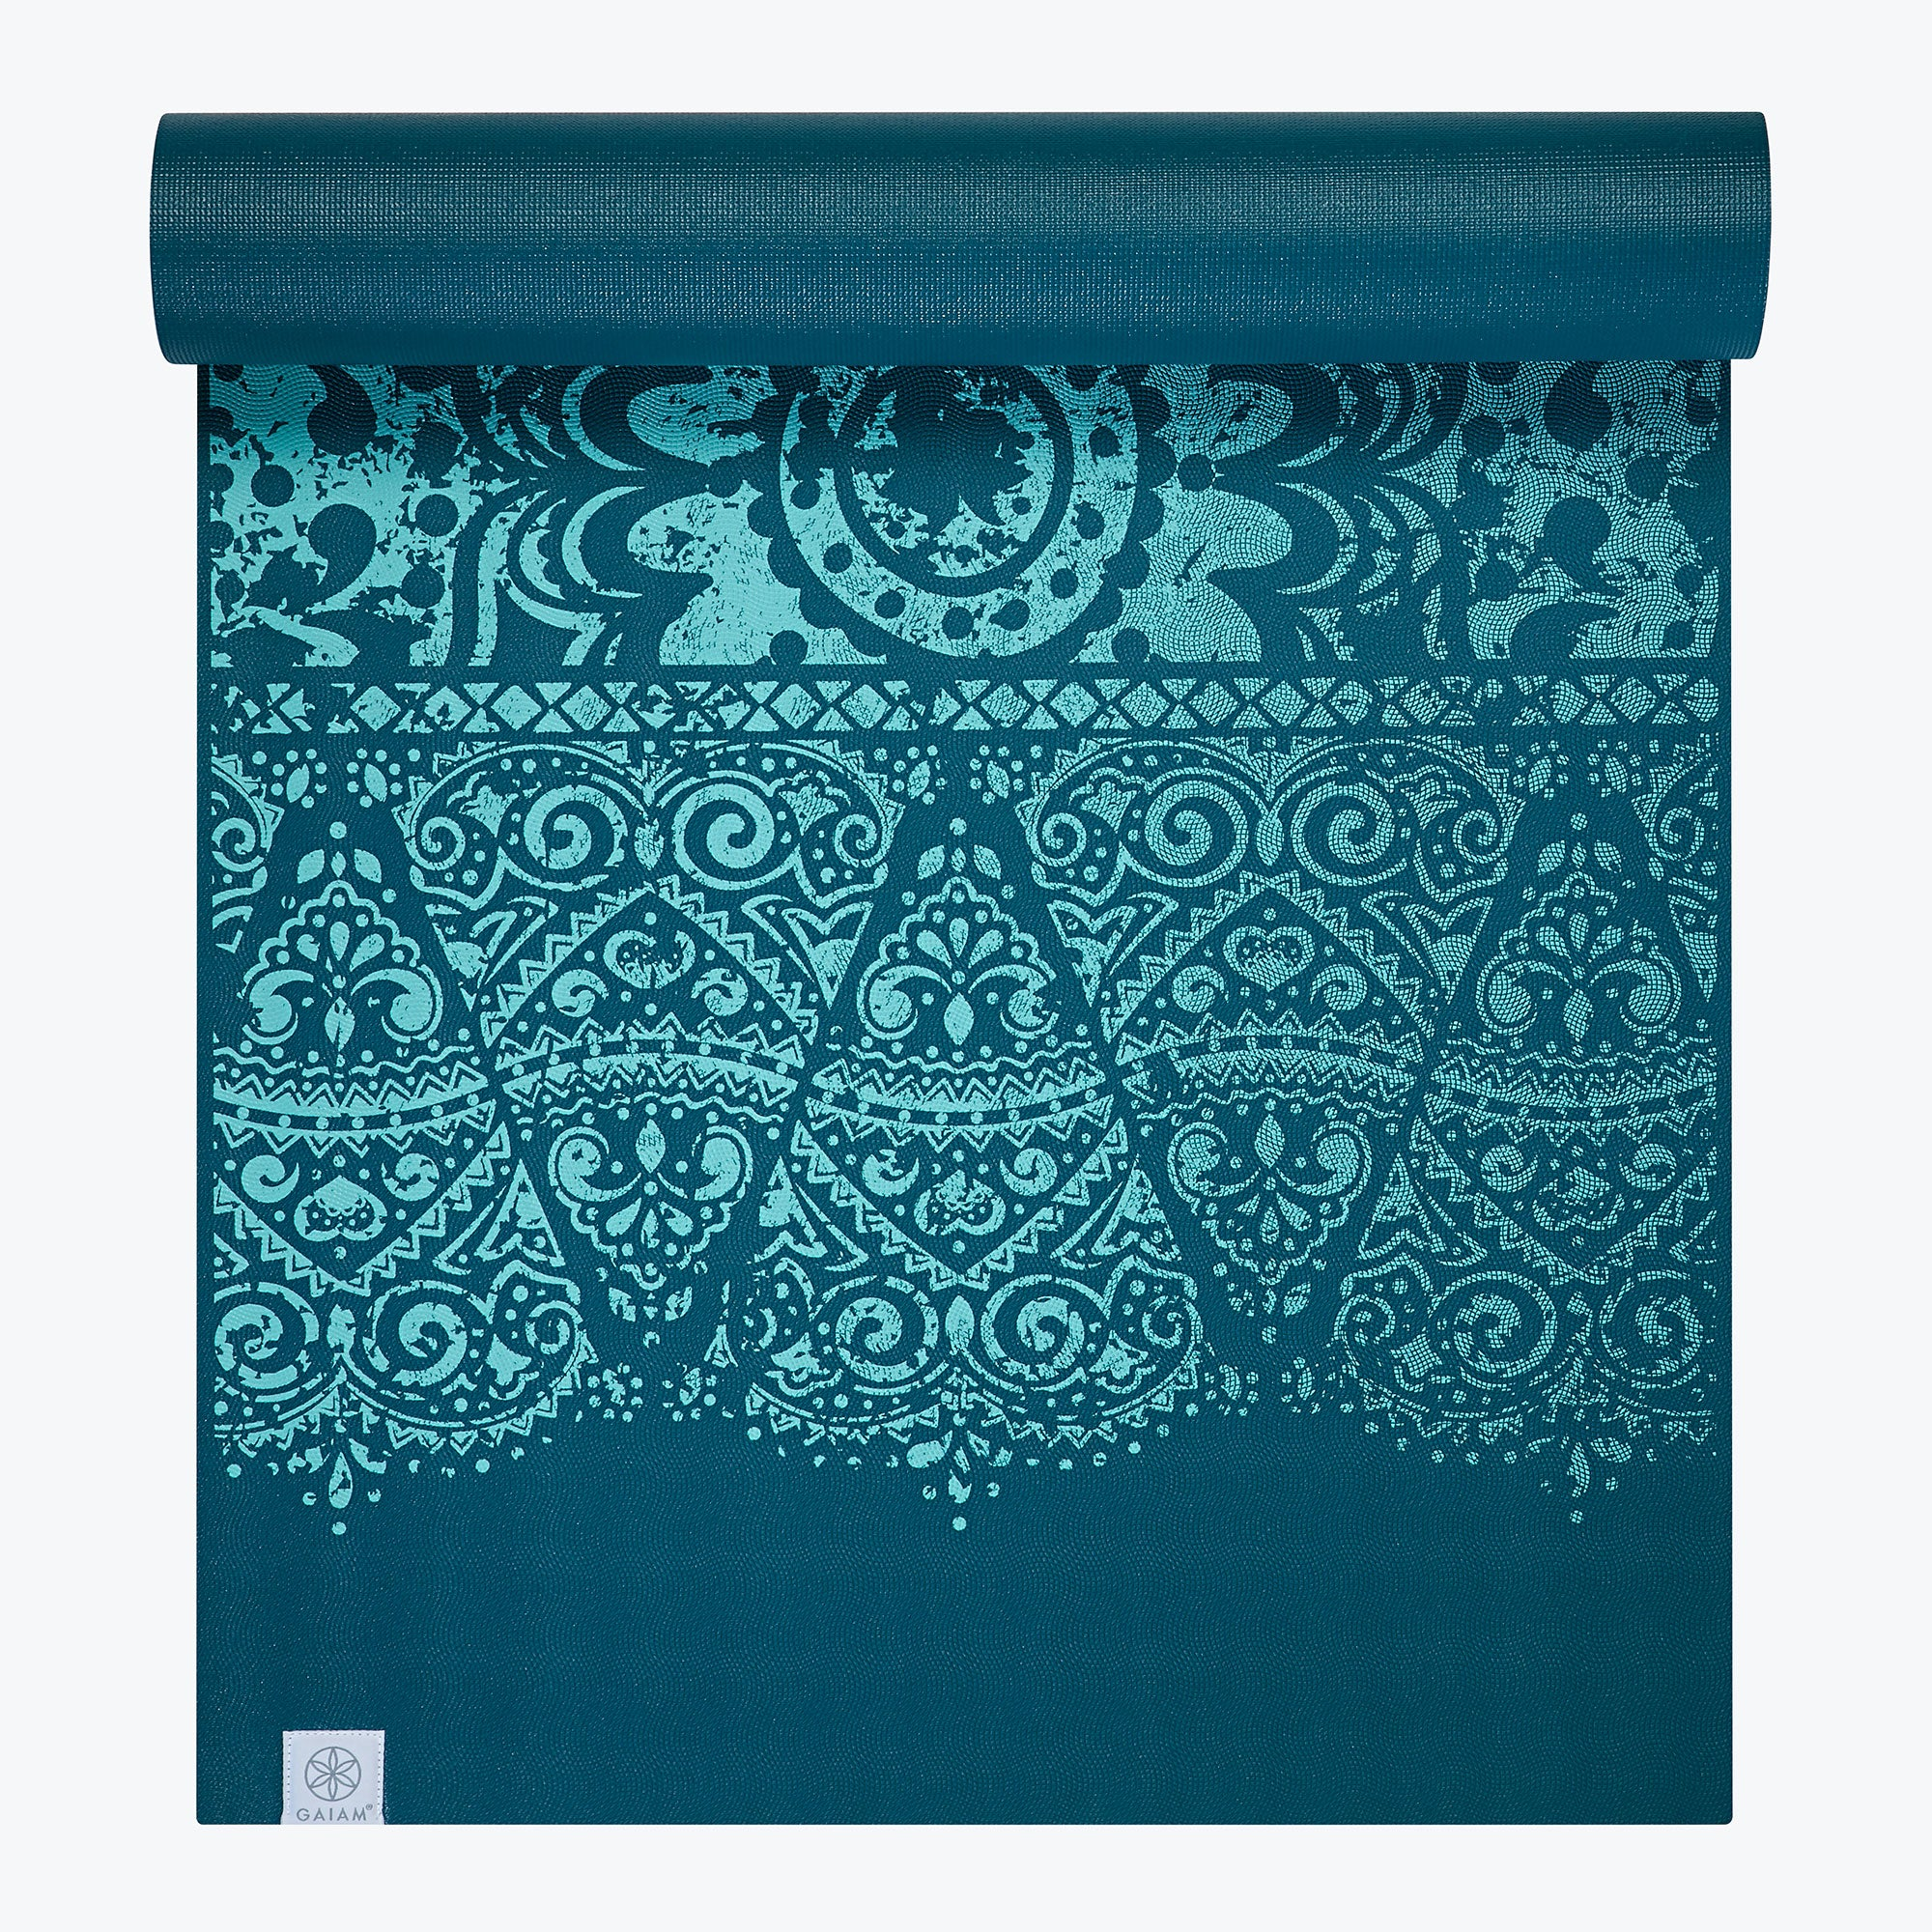 Image of Performance Stable Grip Yoga Mat (6mm)